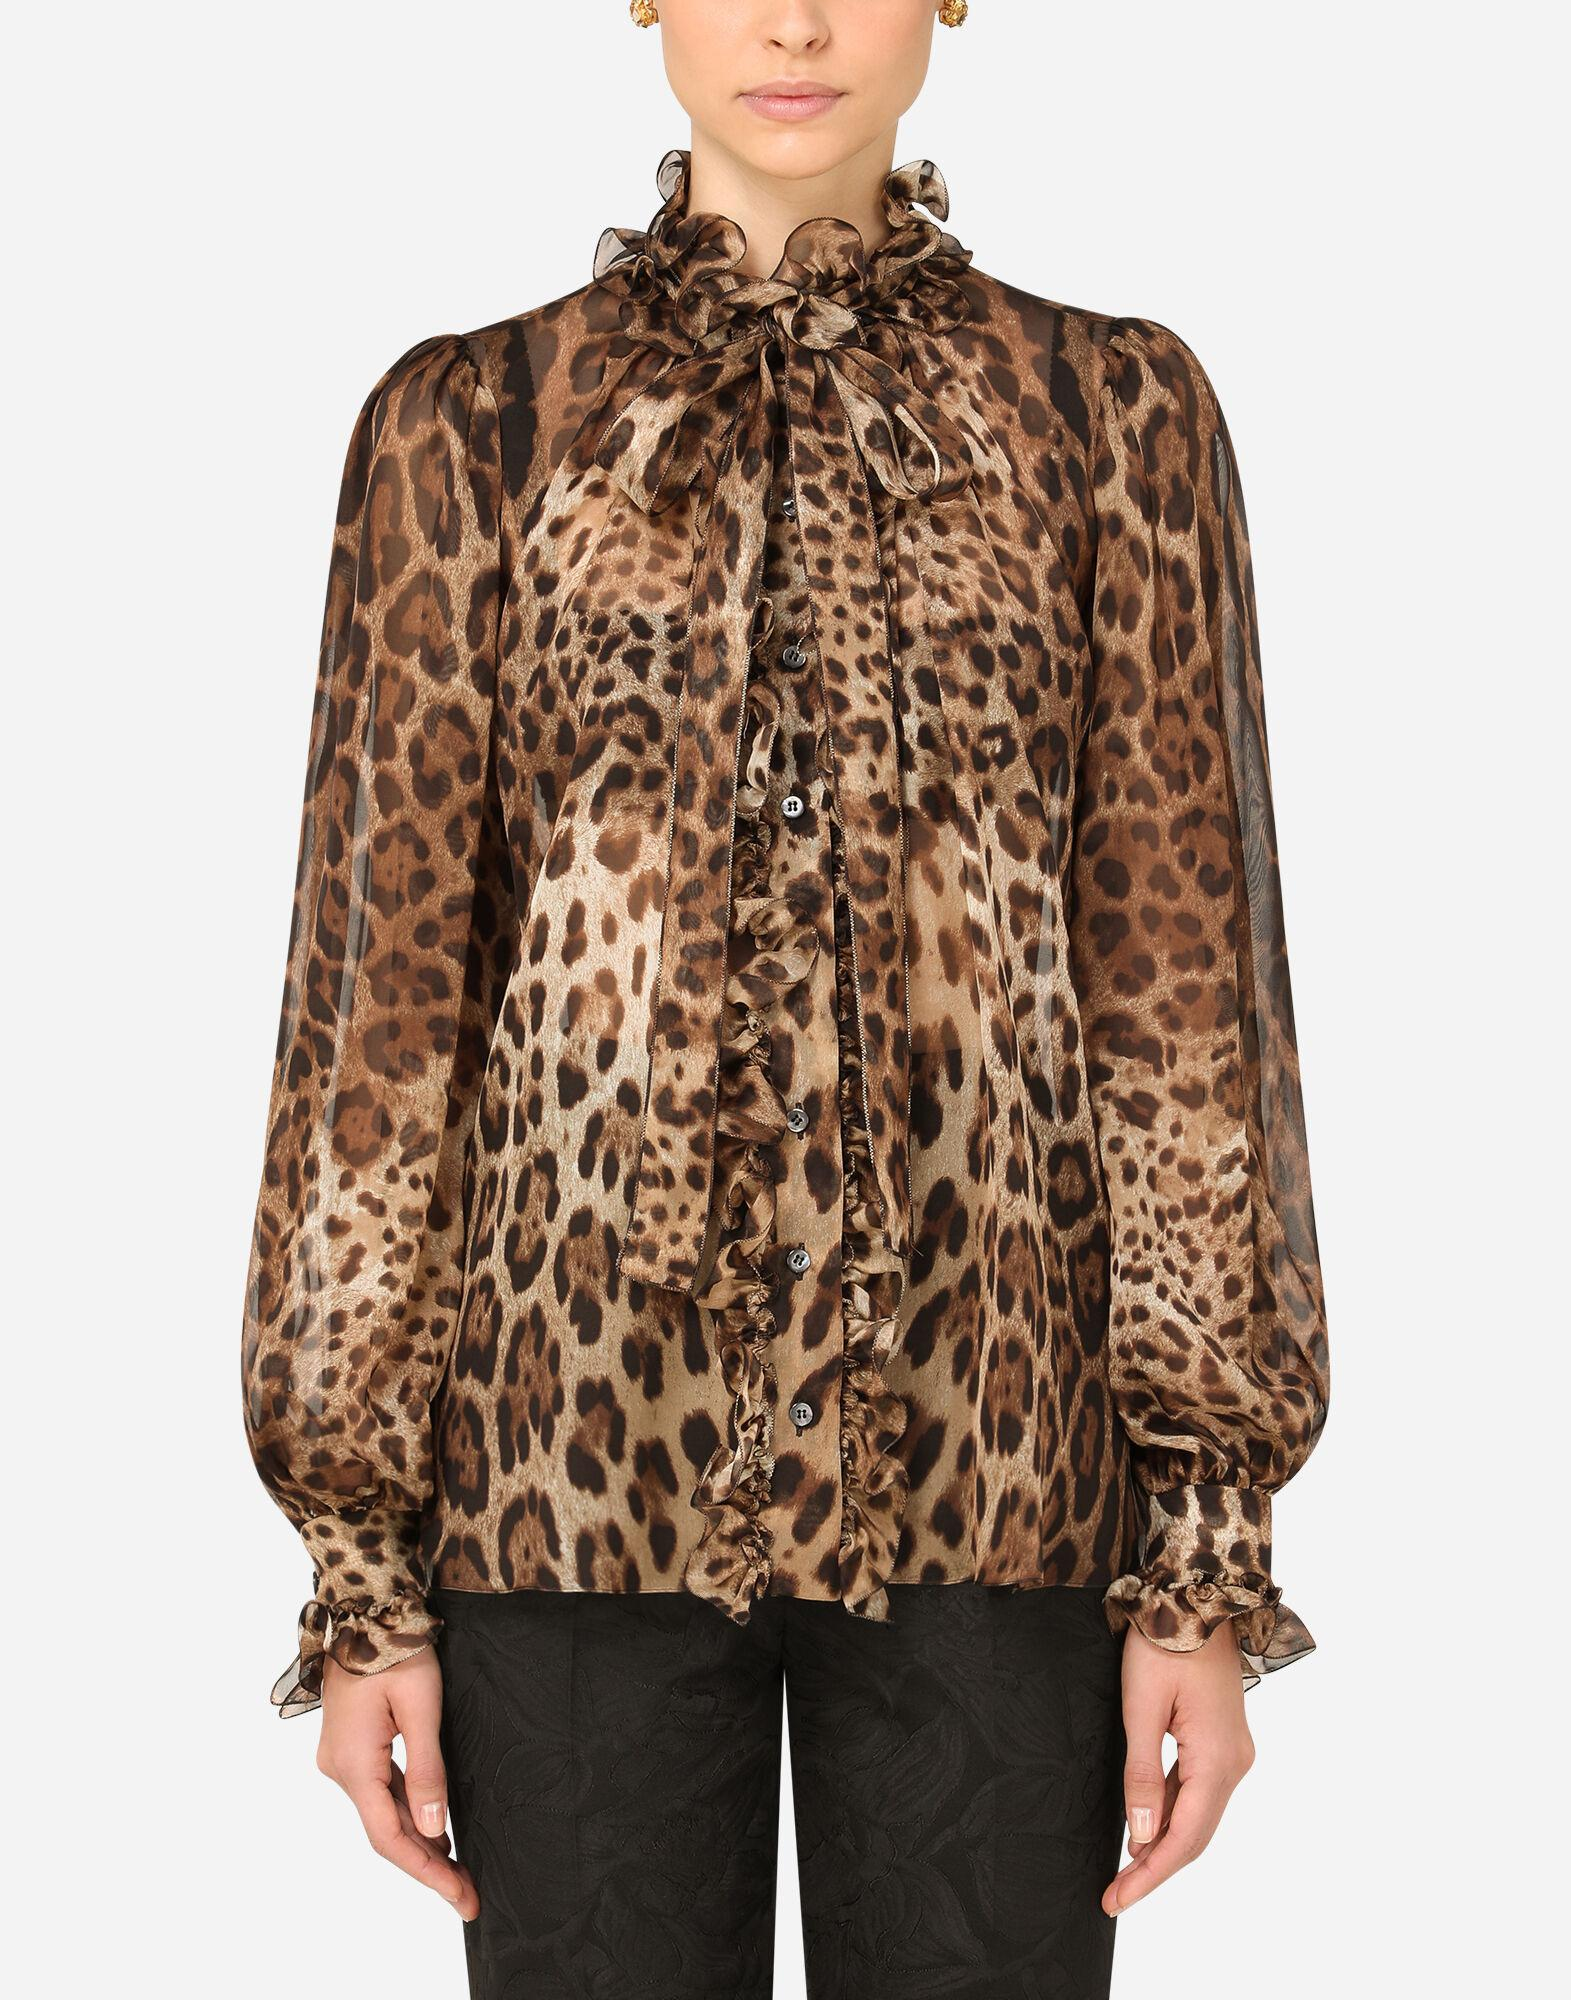 Leopard-print chiffon shirt with ruches and pussy-bow